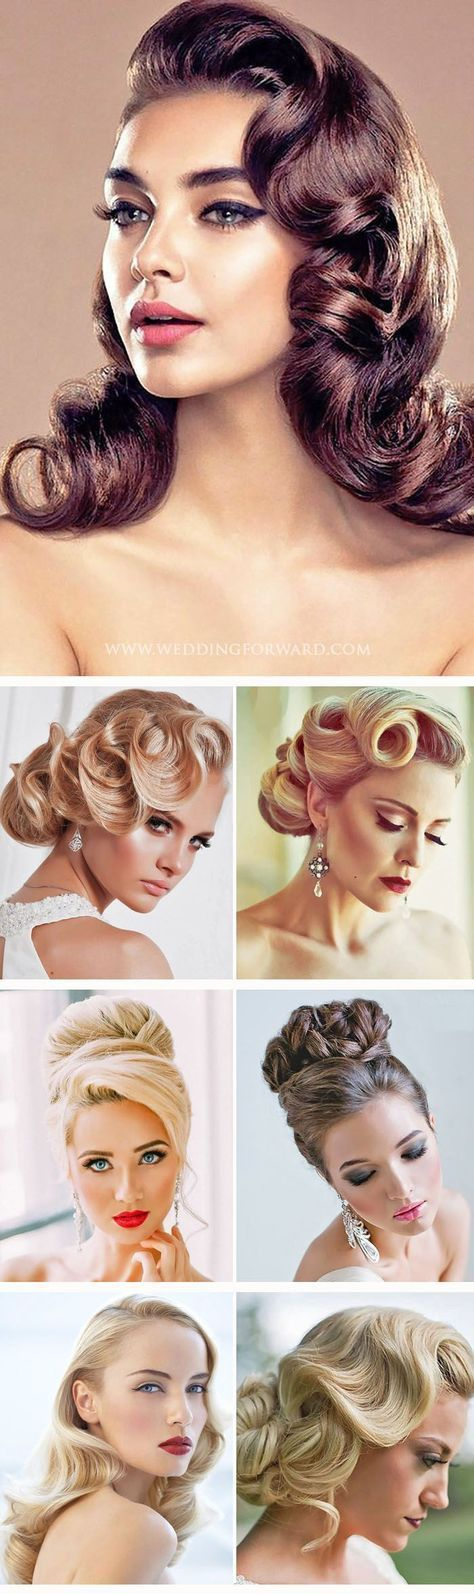 30 UTTERLY GORGEOUS VINTAGE WEDDING HAIRSTYLES